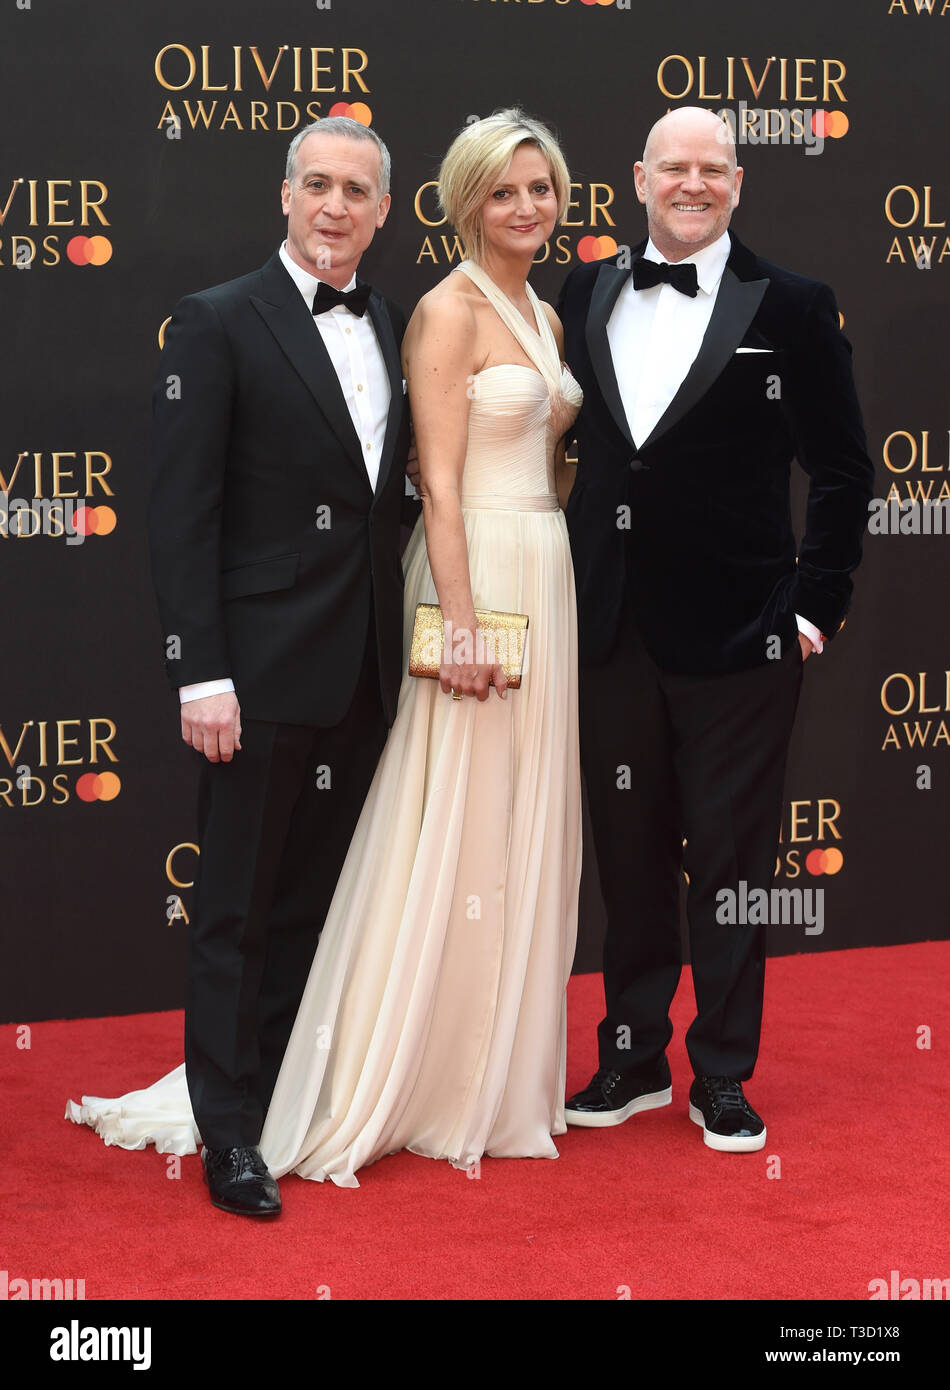 Photo Must Be Credited ©Alpha Press 079965 07/04/2019 Nick Sidi Marianne Elliott and Chris Harper The Olivier Awards 2019 at the Royal Albert Hall London - Stock Image